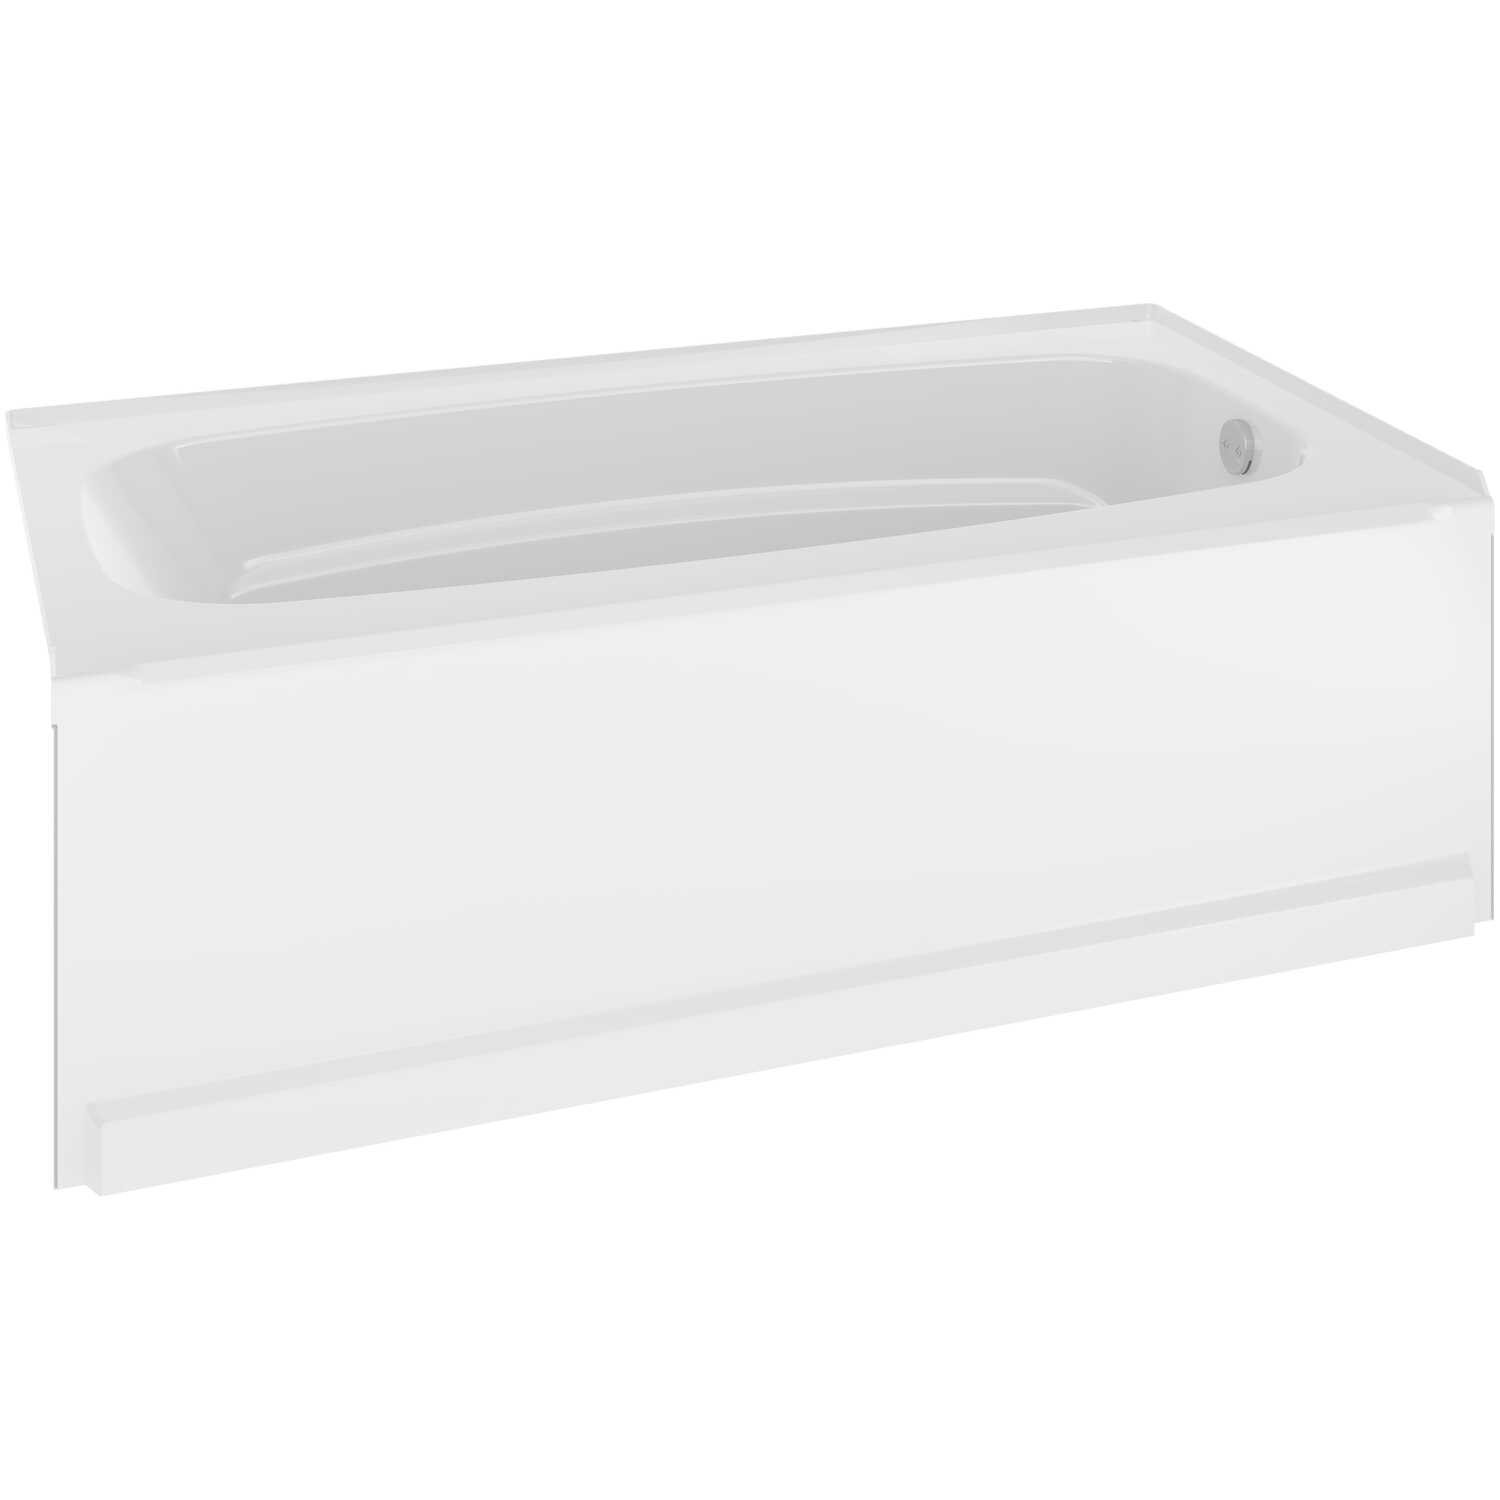 Delta Bathing System  Classic  White  One Piece  Right Hand  Rectangle  Bathtub